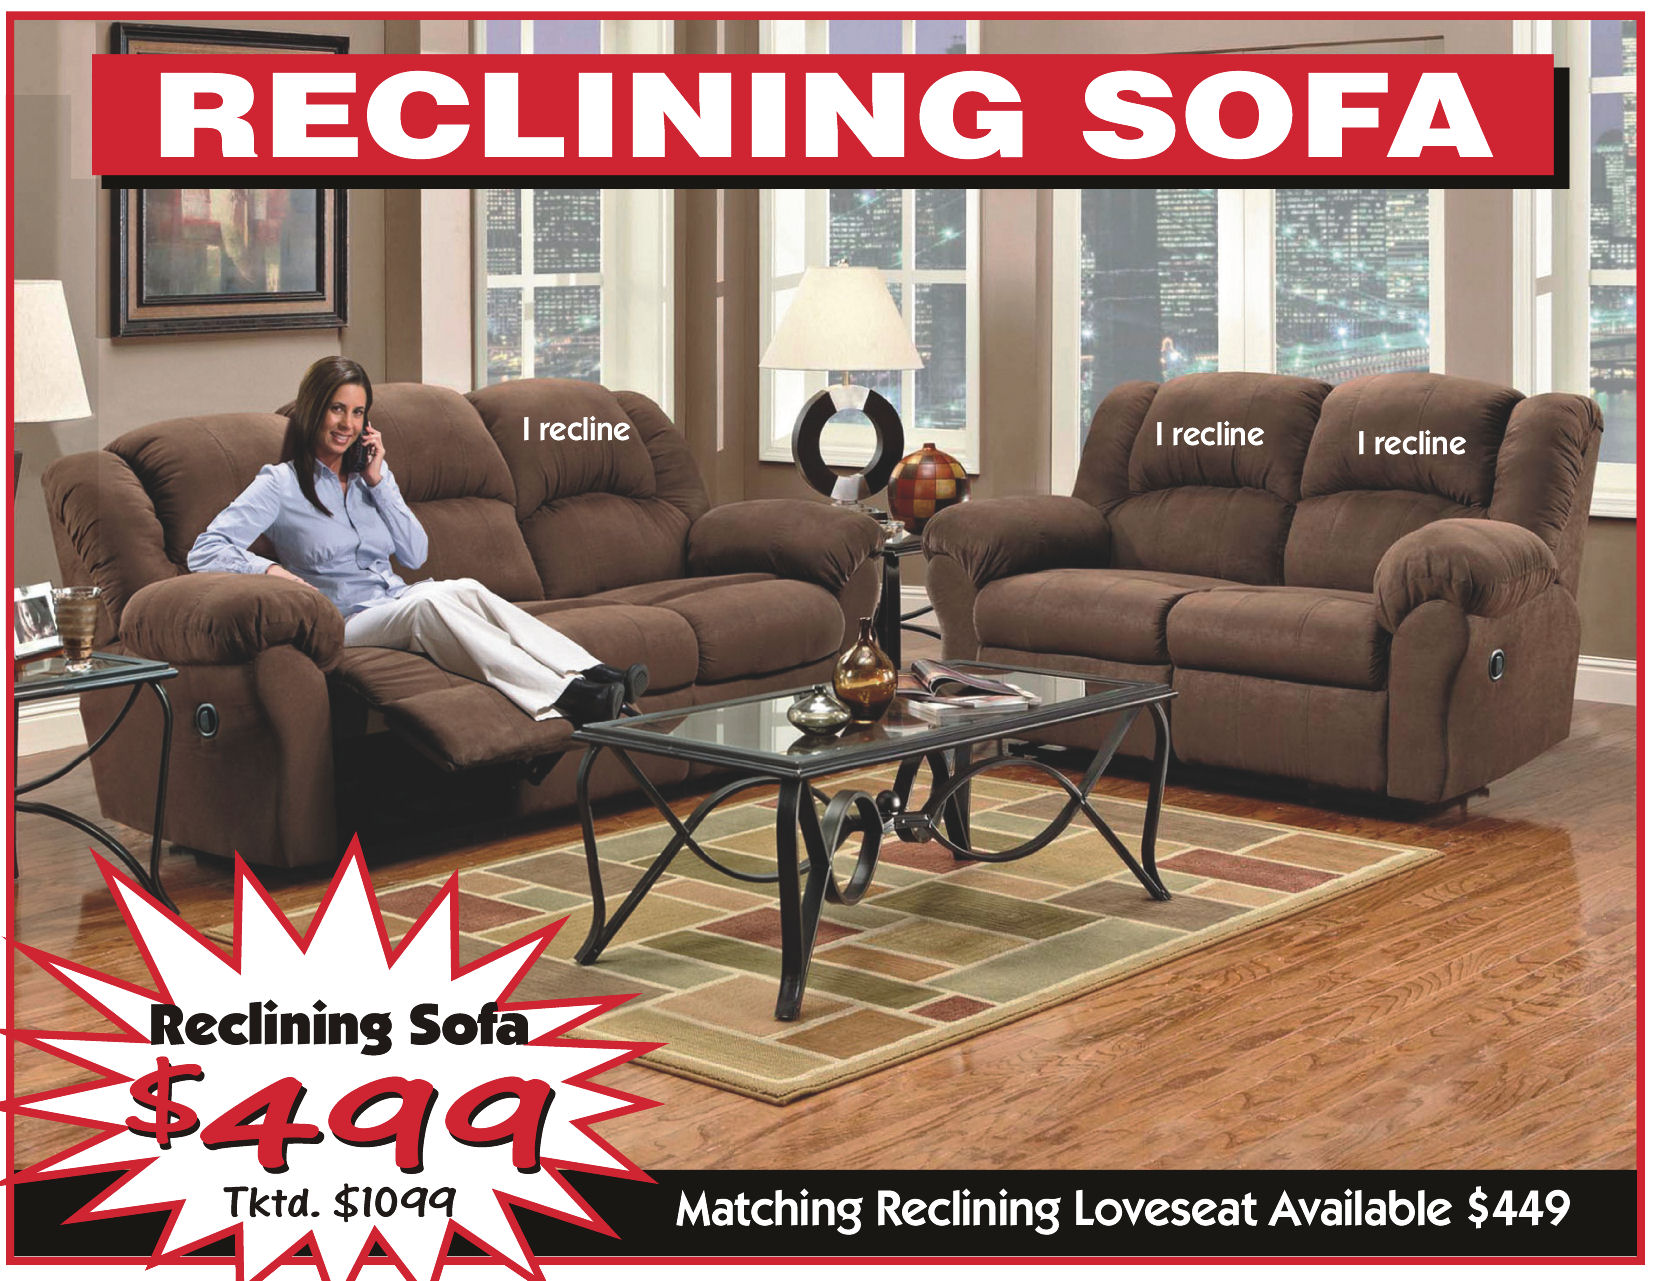 Furniture stores east brunswick nj - Clearance Sale Slide 6 Aff 1003